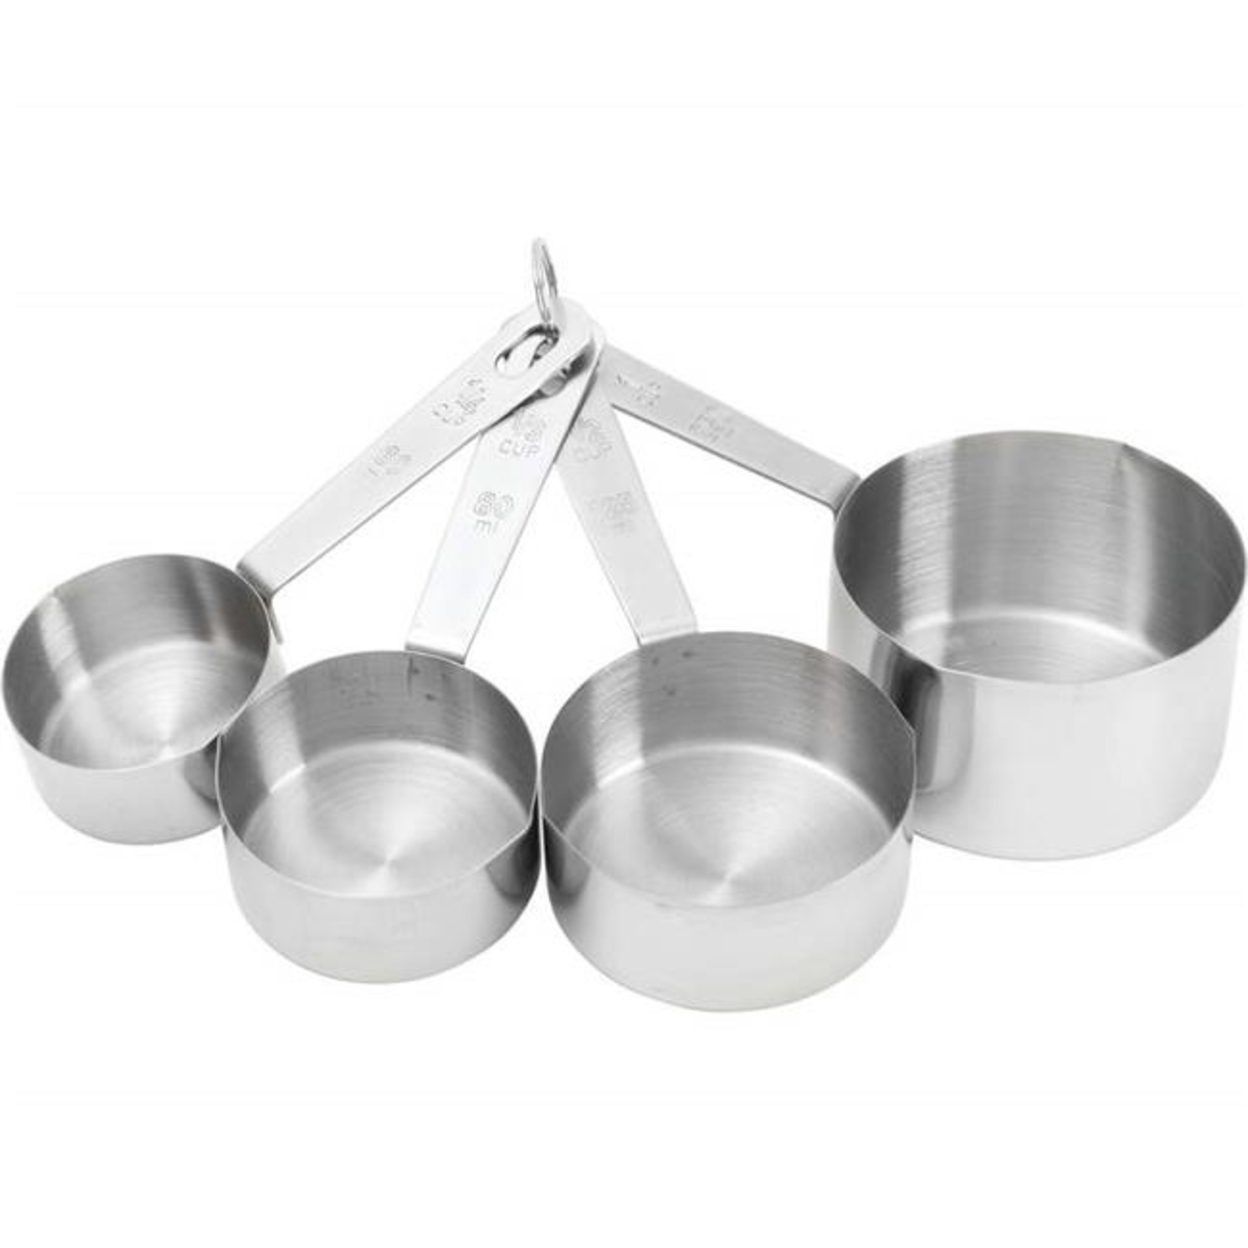 Bnfusa Ktcups4 Stainless Steel Measuring Cup Set With Etched Markings 4 Piece 5a3d6ed4e2246116fd7cab8f